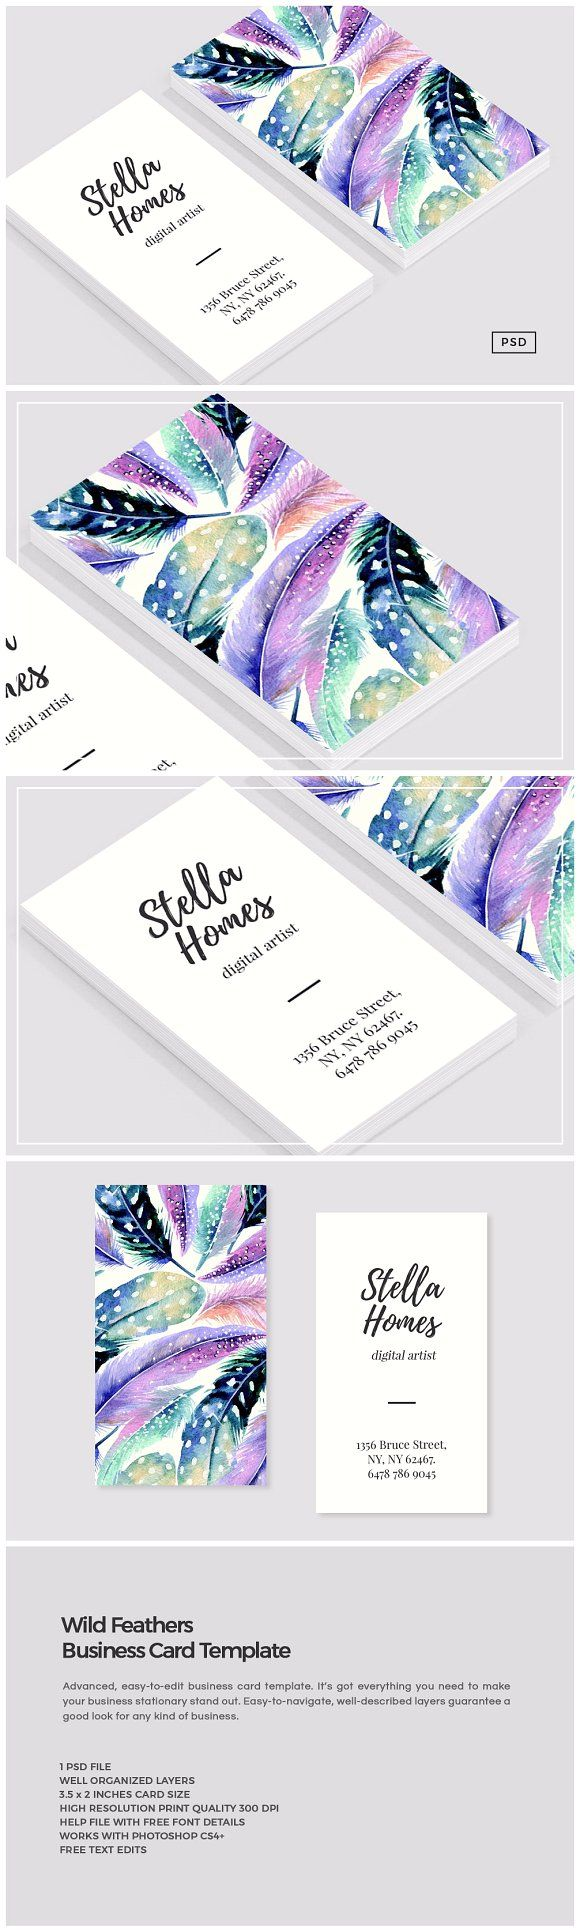 Wild Feathers Business Card Template | Card templates, Business ...